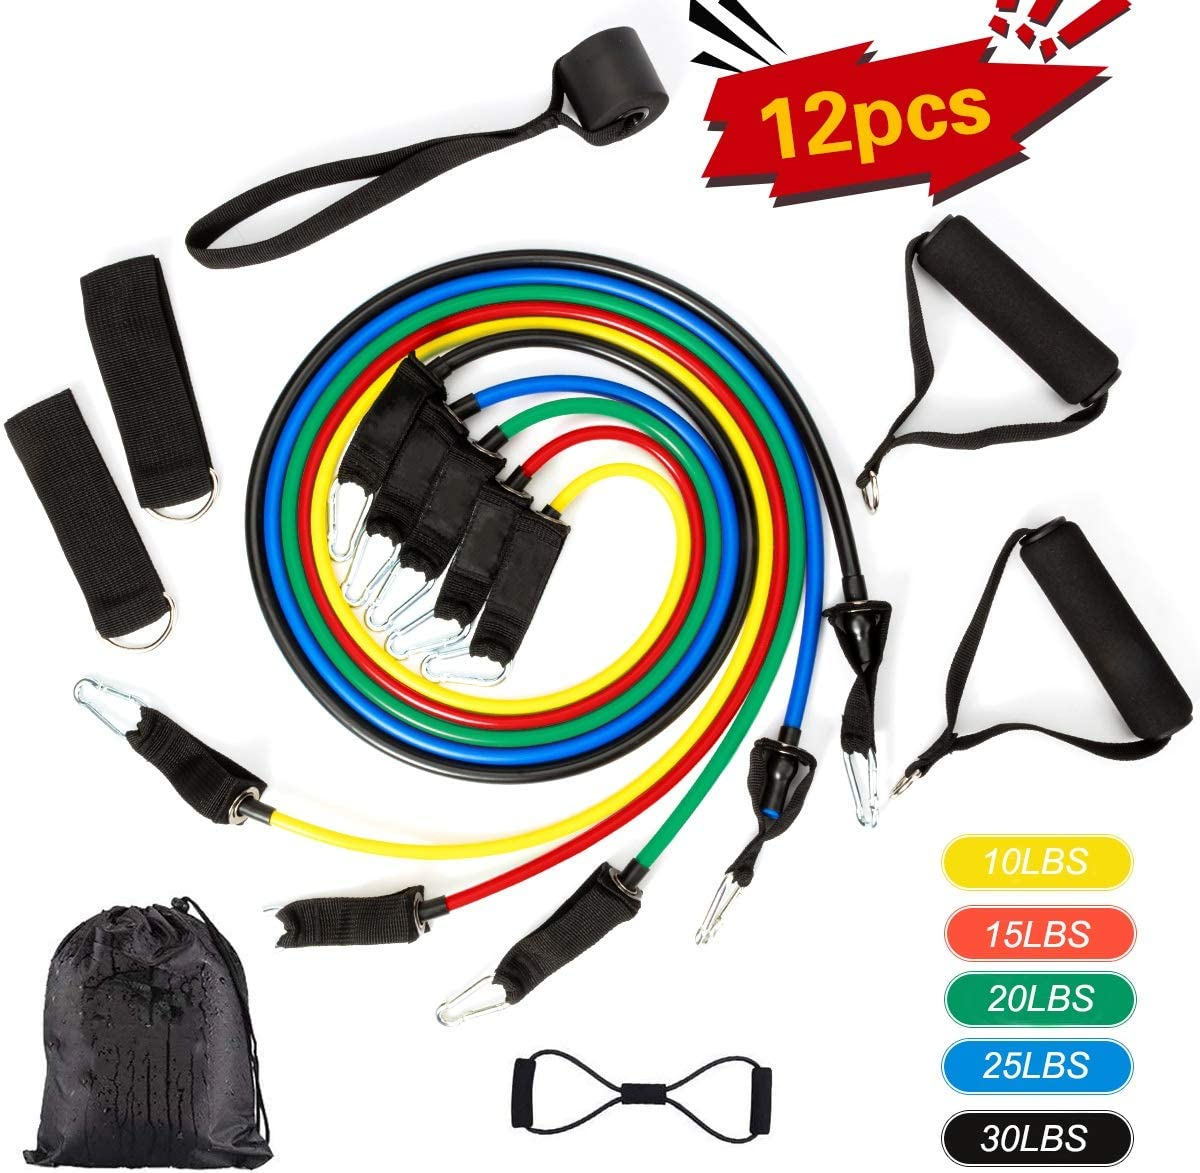 Resistance Band Set, 12 PCS Exercise Resistance Bands with Door Anchor WAS £26.99 NOW £16.19 w/code 3IH2PP5Q @ Amazon